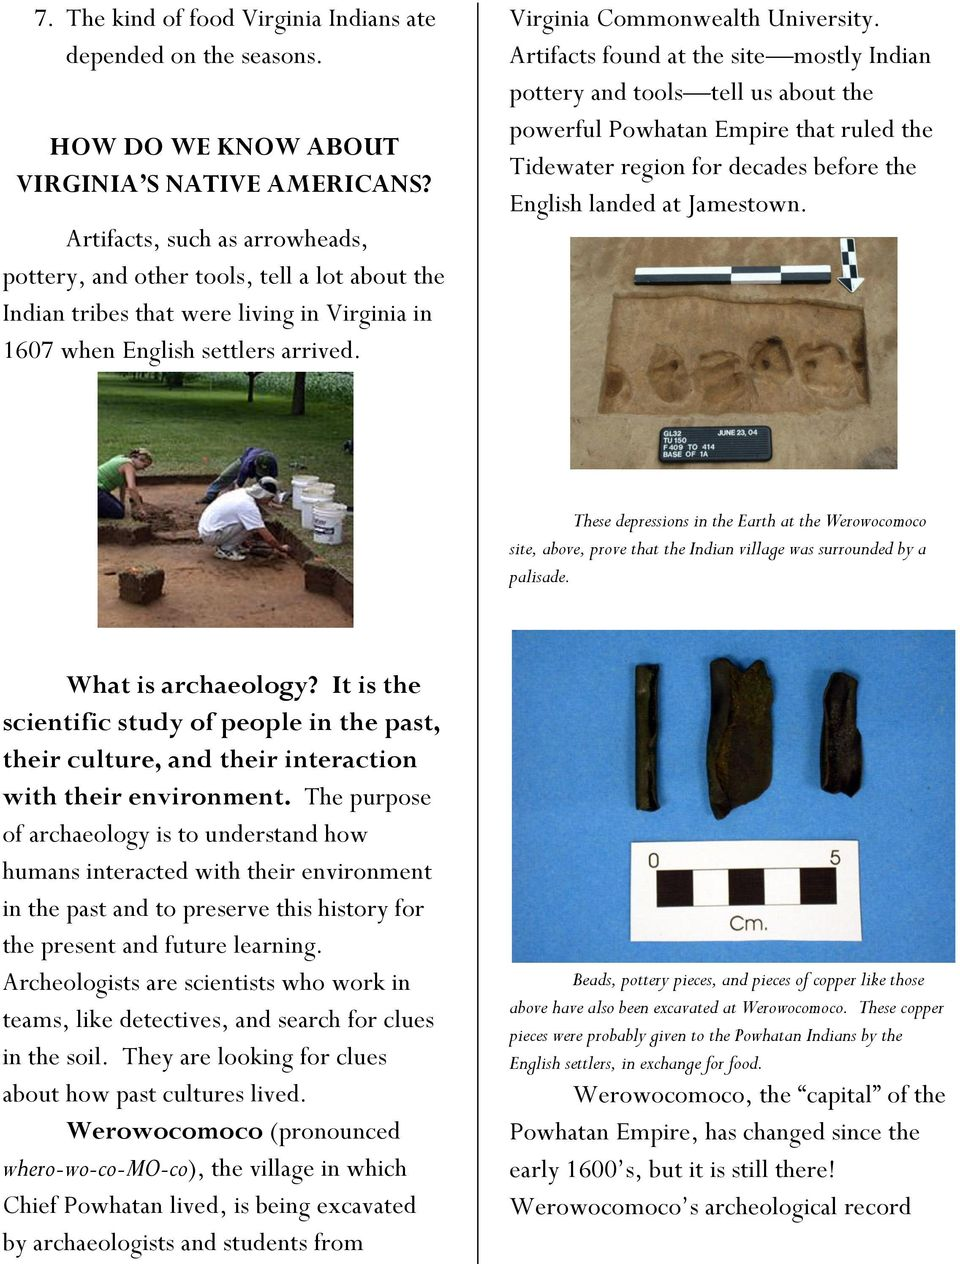 Artifacts found at the site mostly Indian pottery and tools tell us about the powerful Powhatan Empire that ruled the Tidewater region for decades before the English landed at Jamestown.